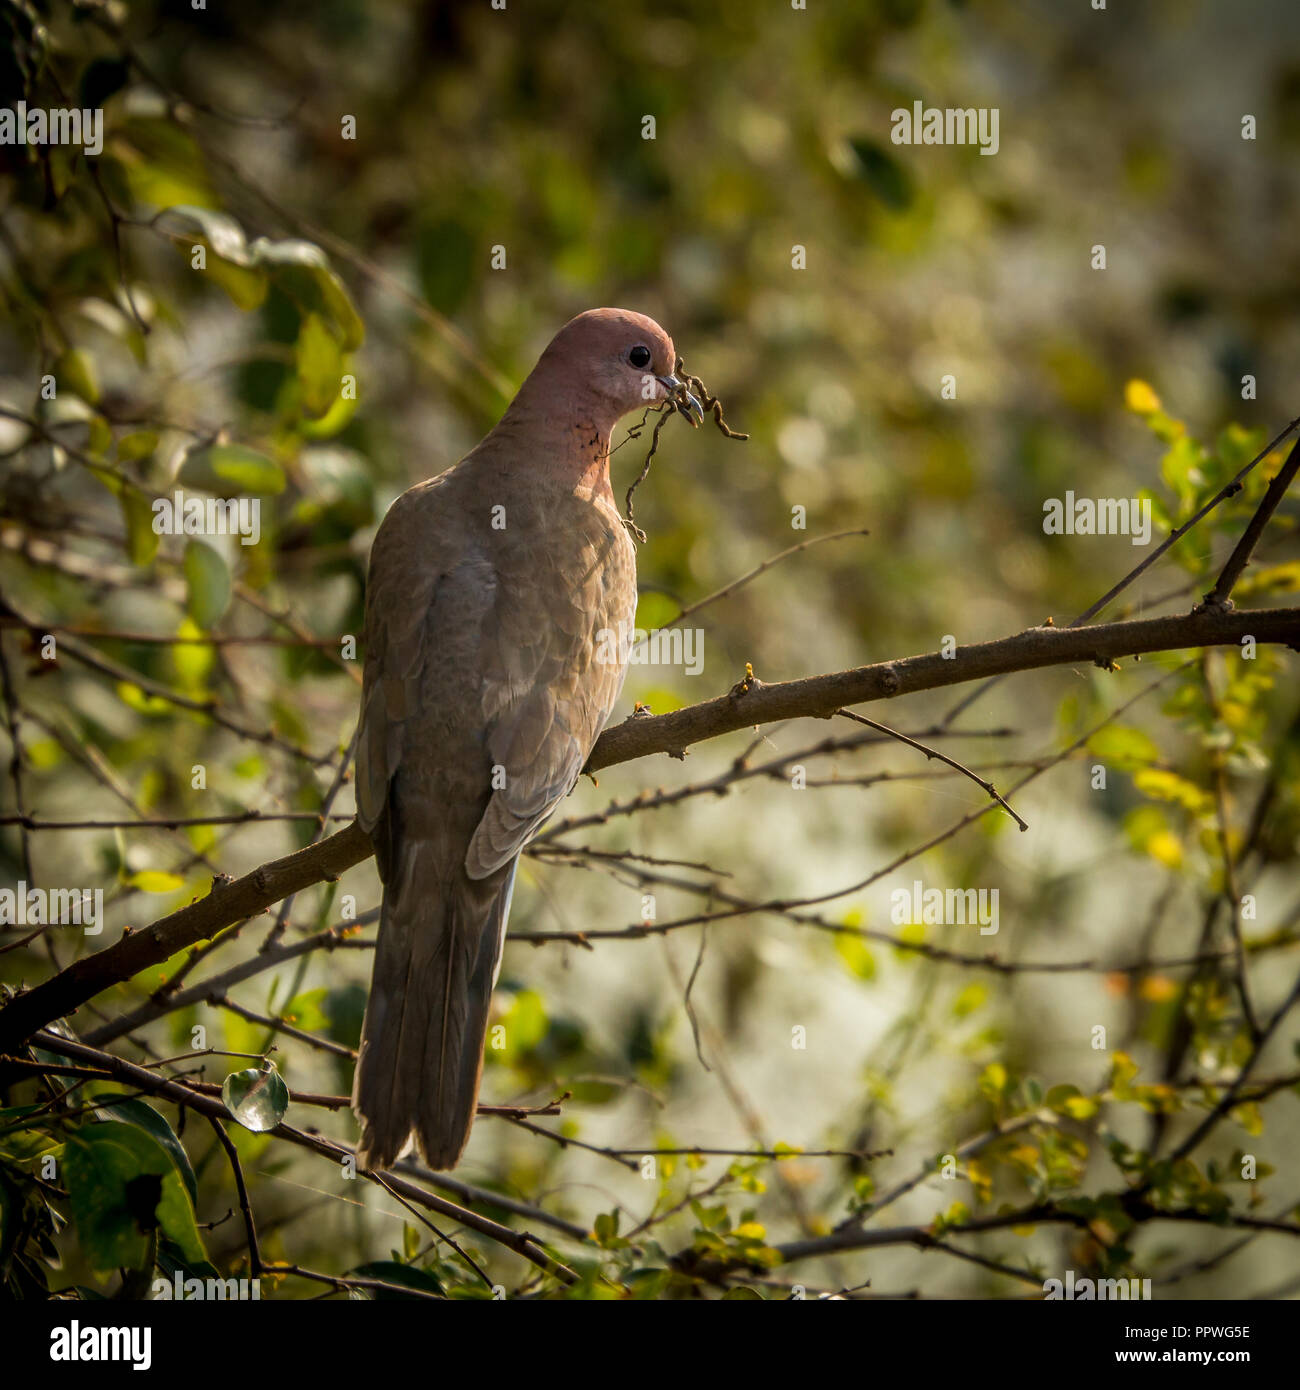 Dove with twigs in mouth at Keoladeo Bird Sanctuary, Rajasthan - Stock Image